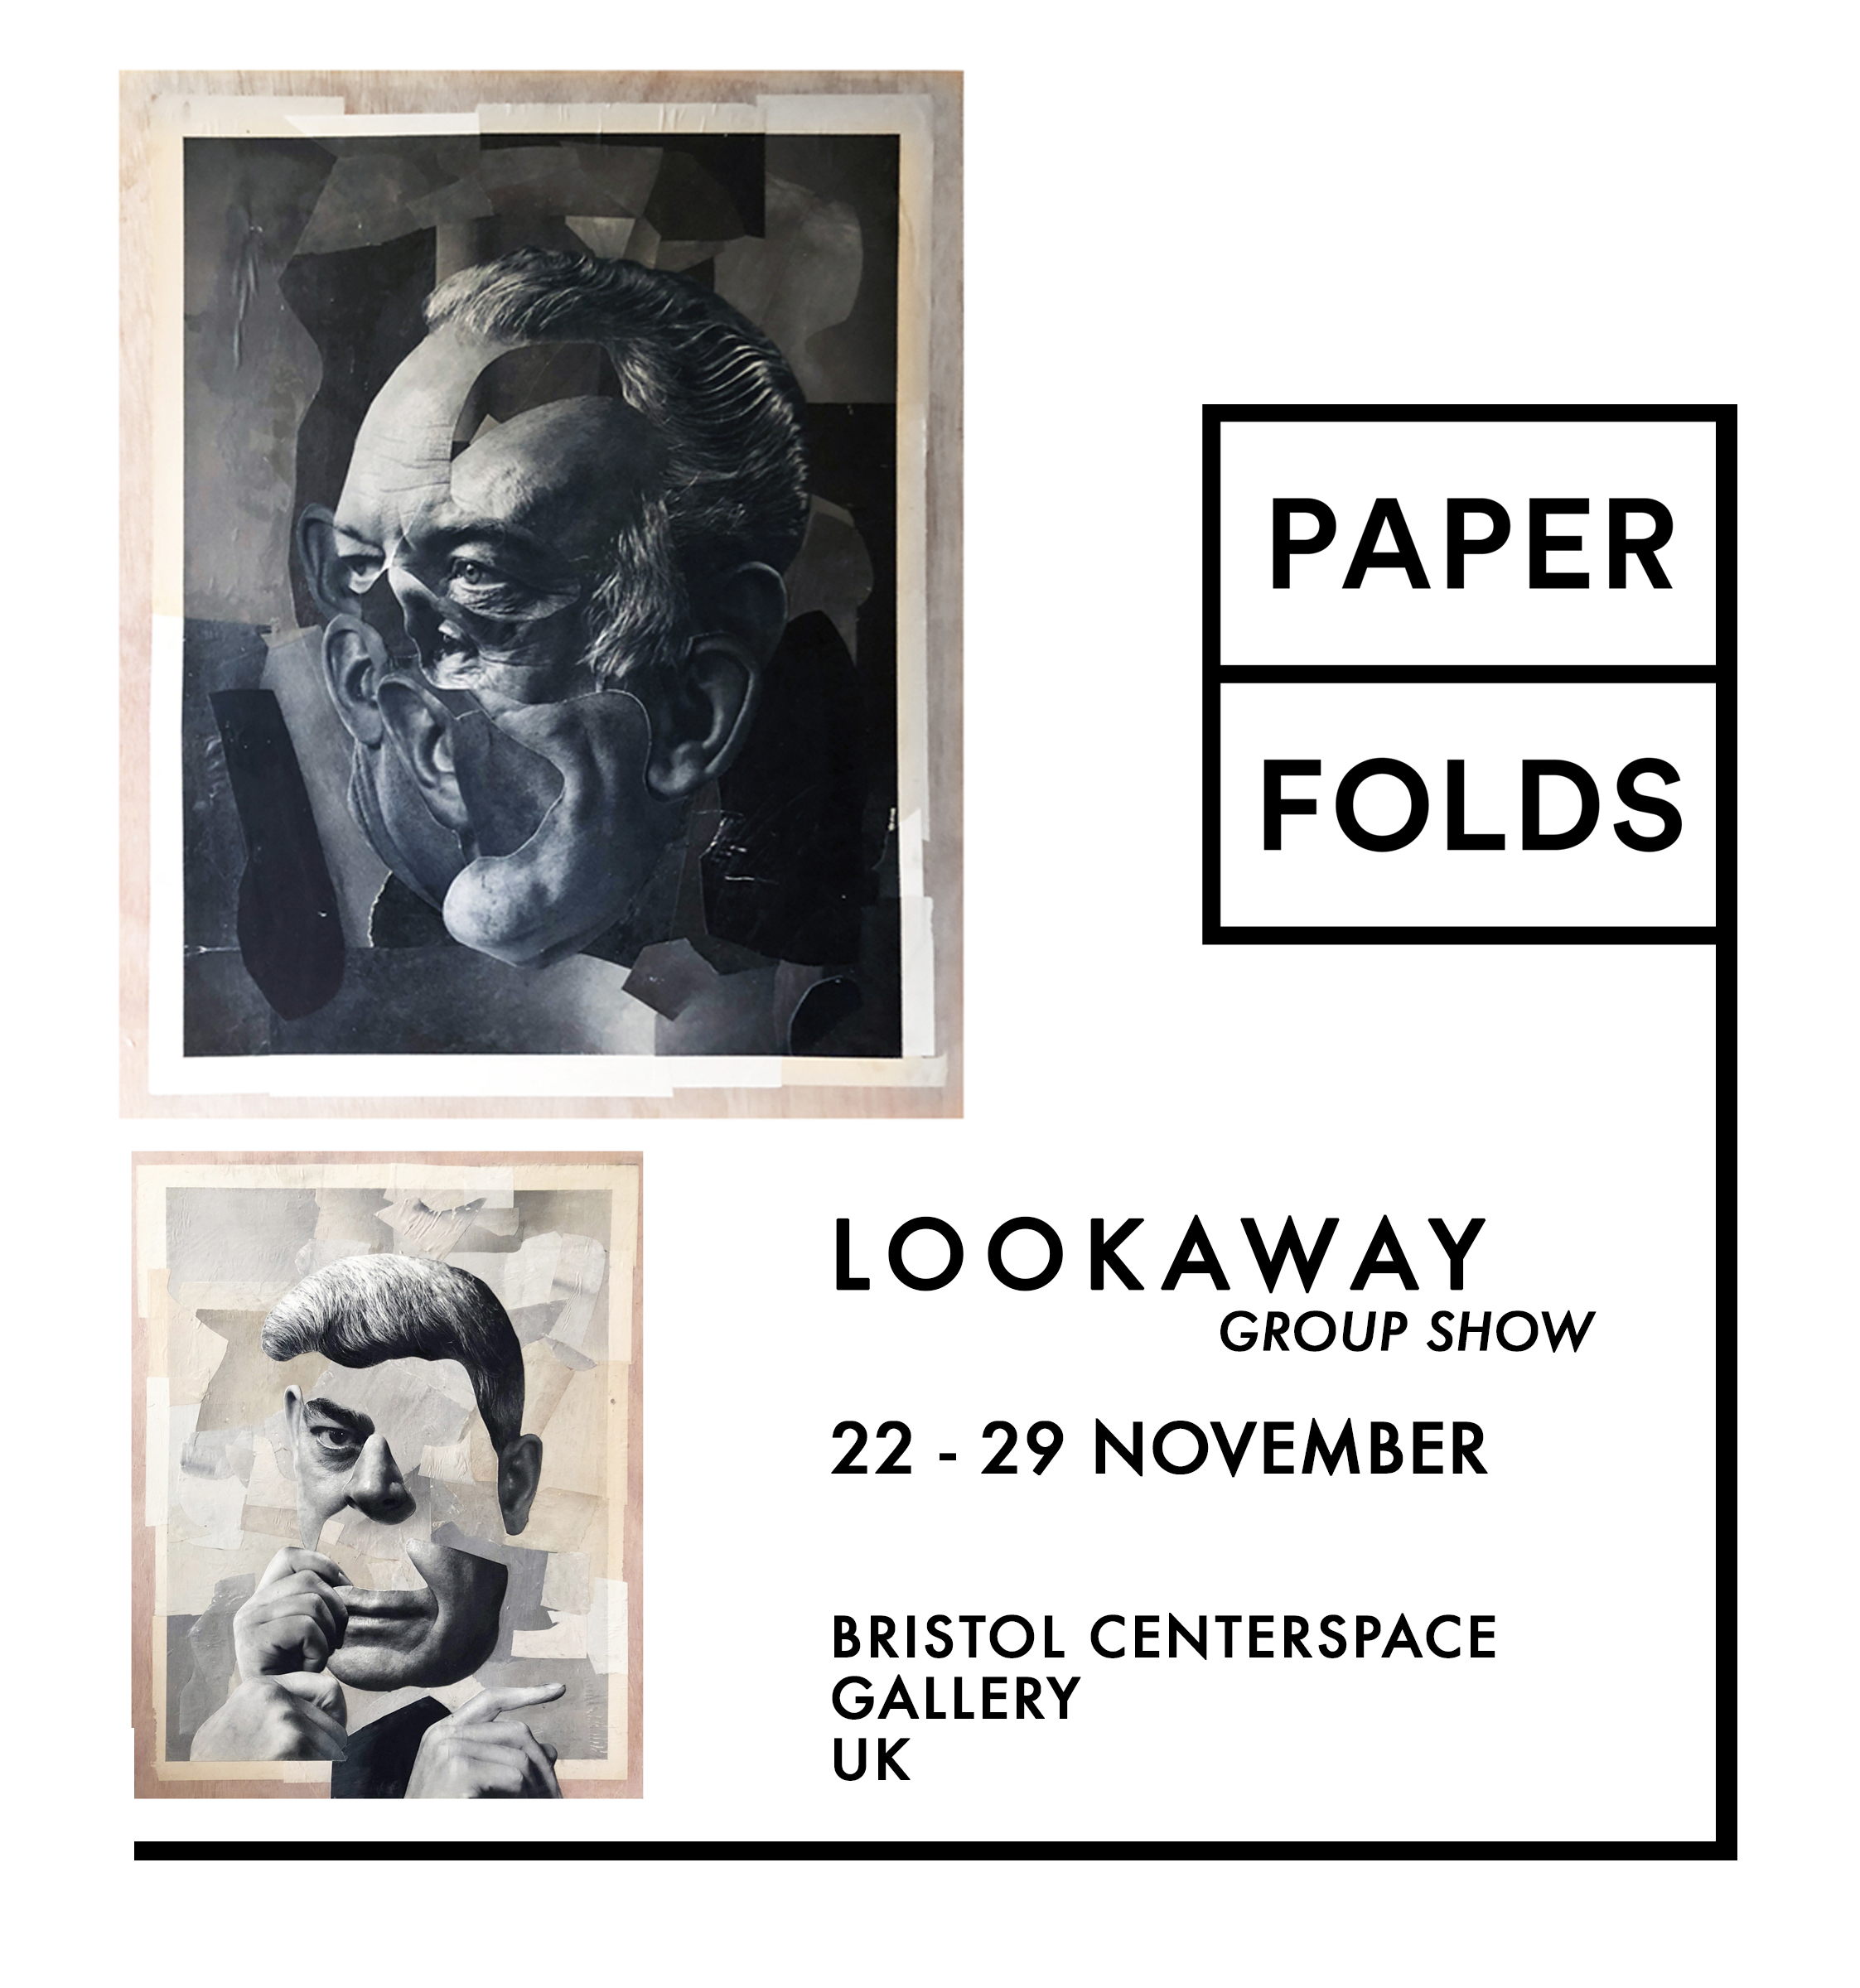 International Group Show - Six of Beth's original collages are included in a group show in Bristol, UK. Curated by Nick at PaperFolds, this thoughtfully designed show features a variety of pieces from artists all over the world.